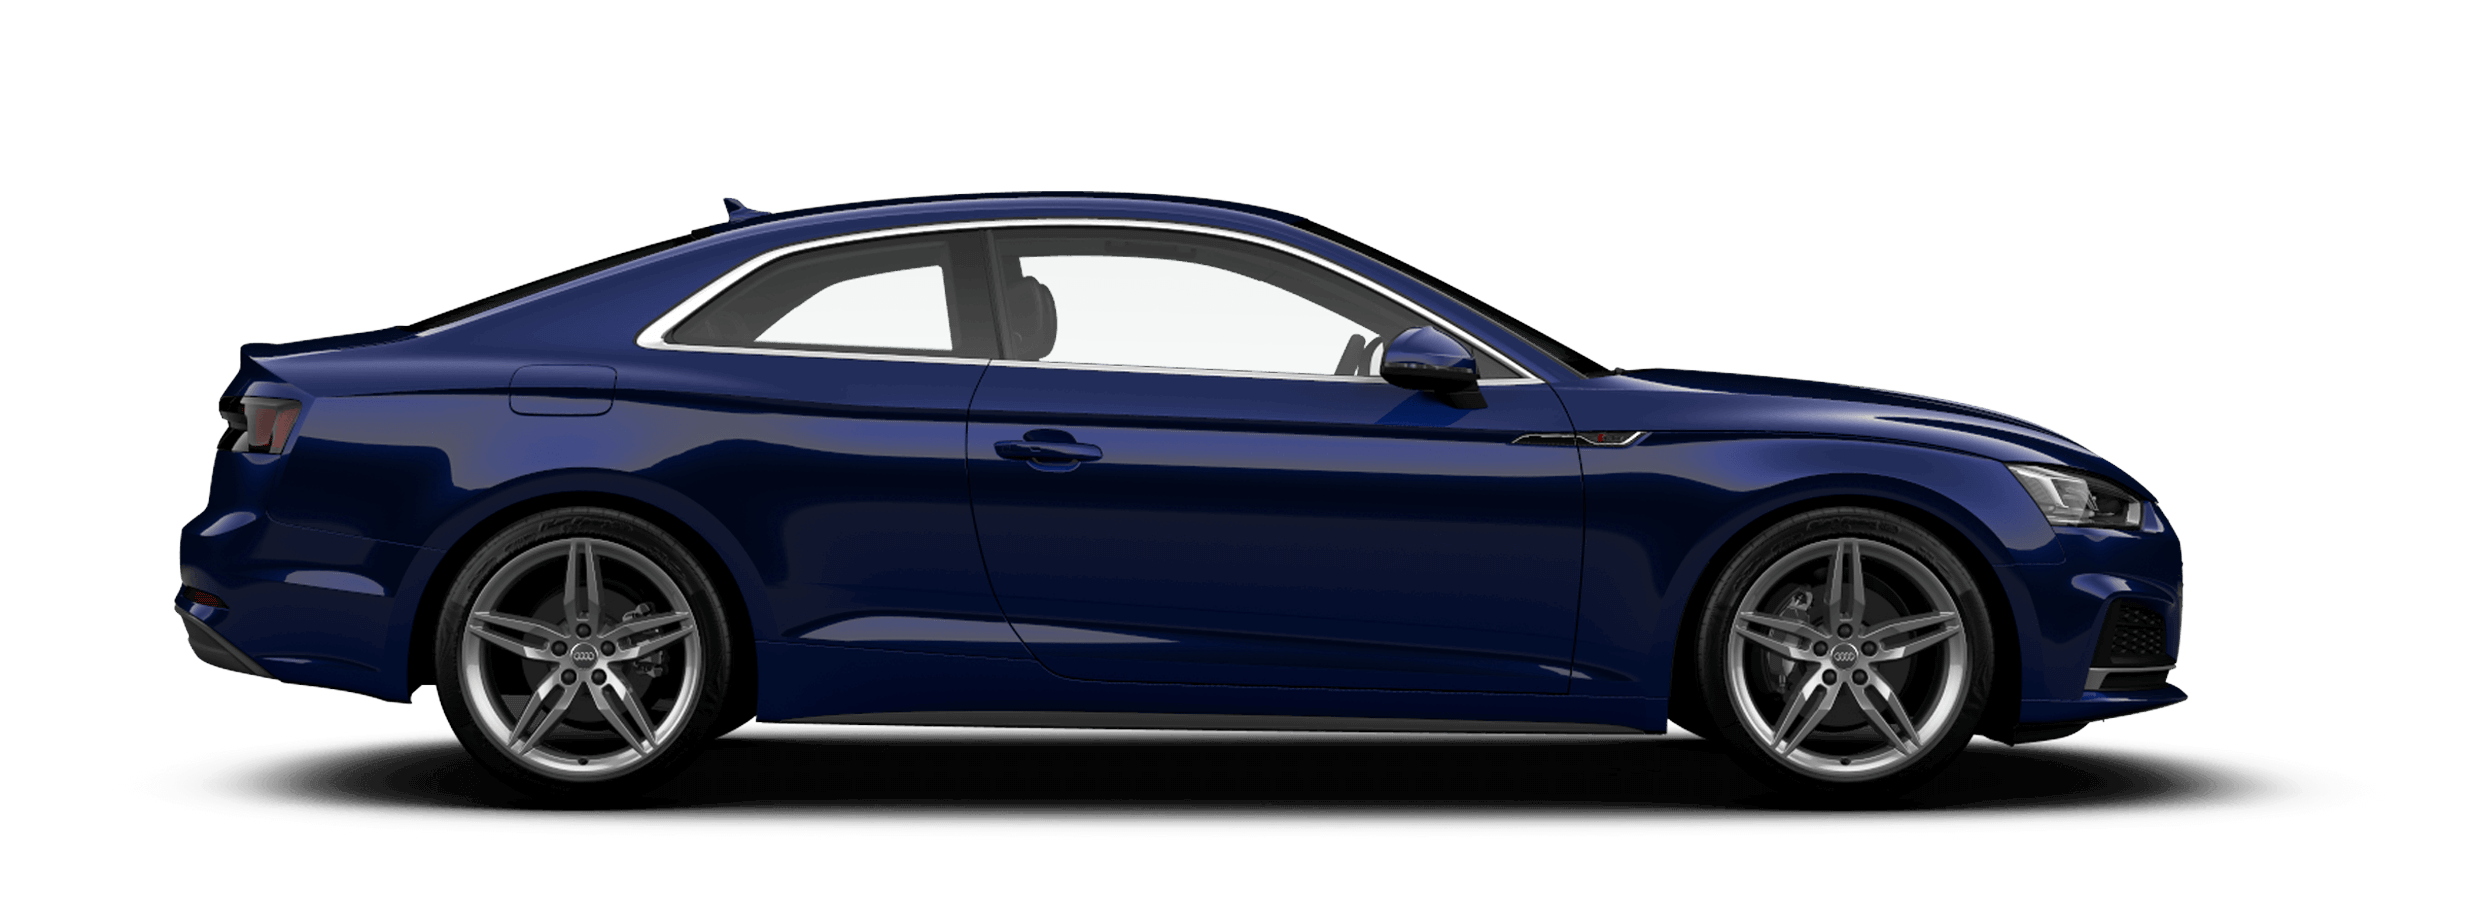 https://bluesky-cogcms.cdn.imgeng.in/media/54490/rs-5-coupe.png